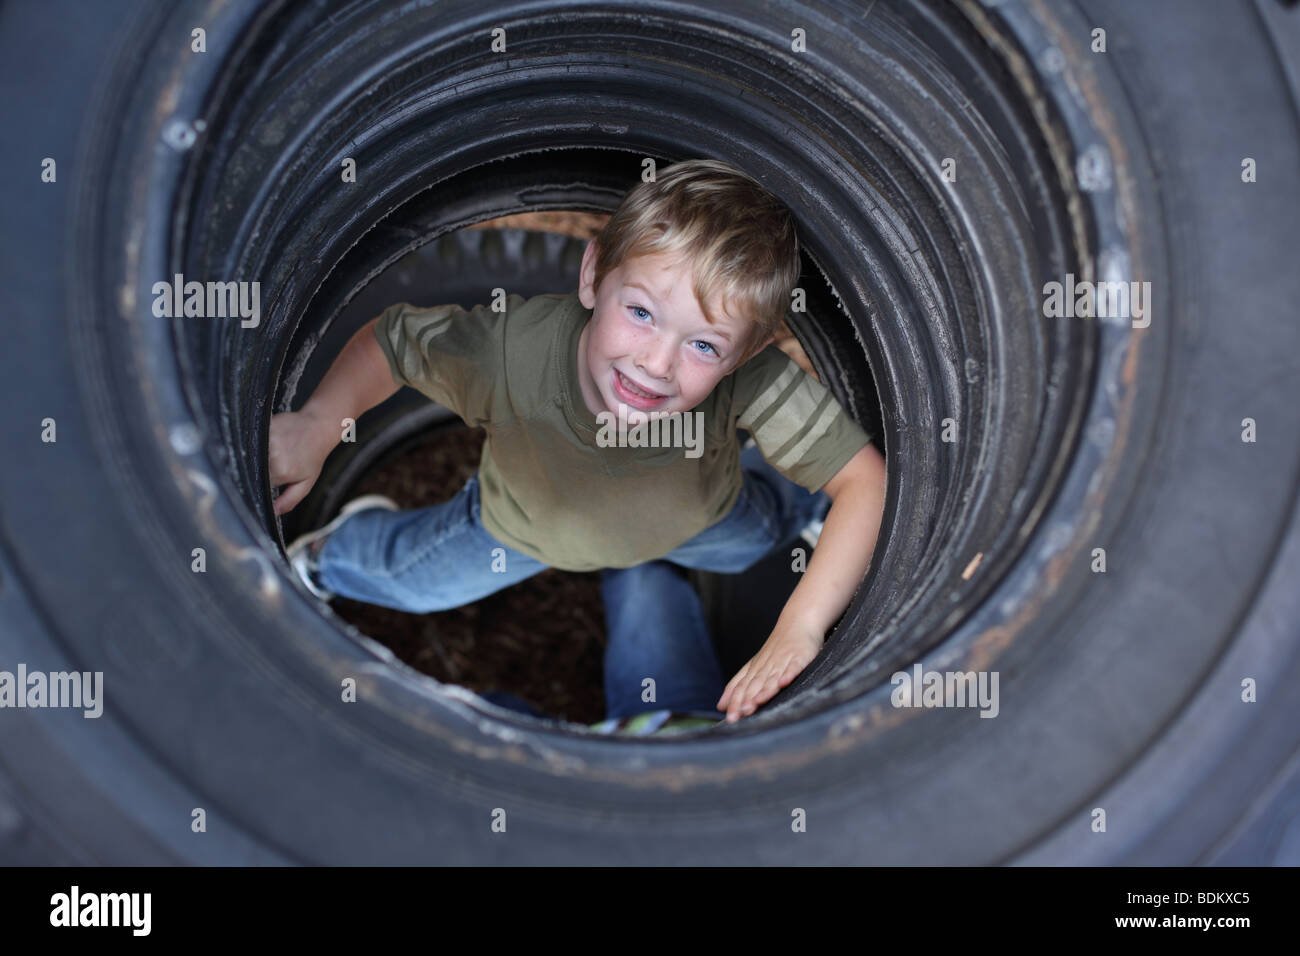 Young boy in tires at park - Stock Image